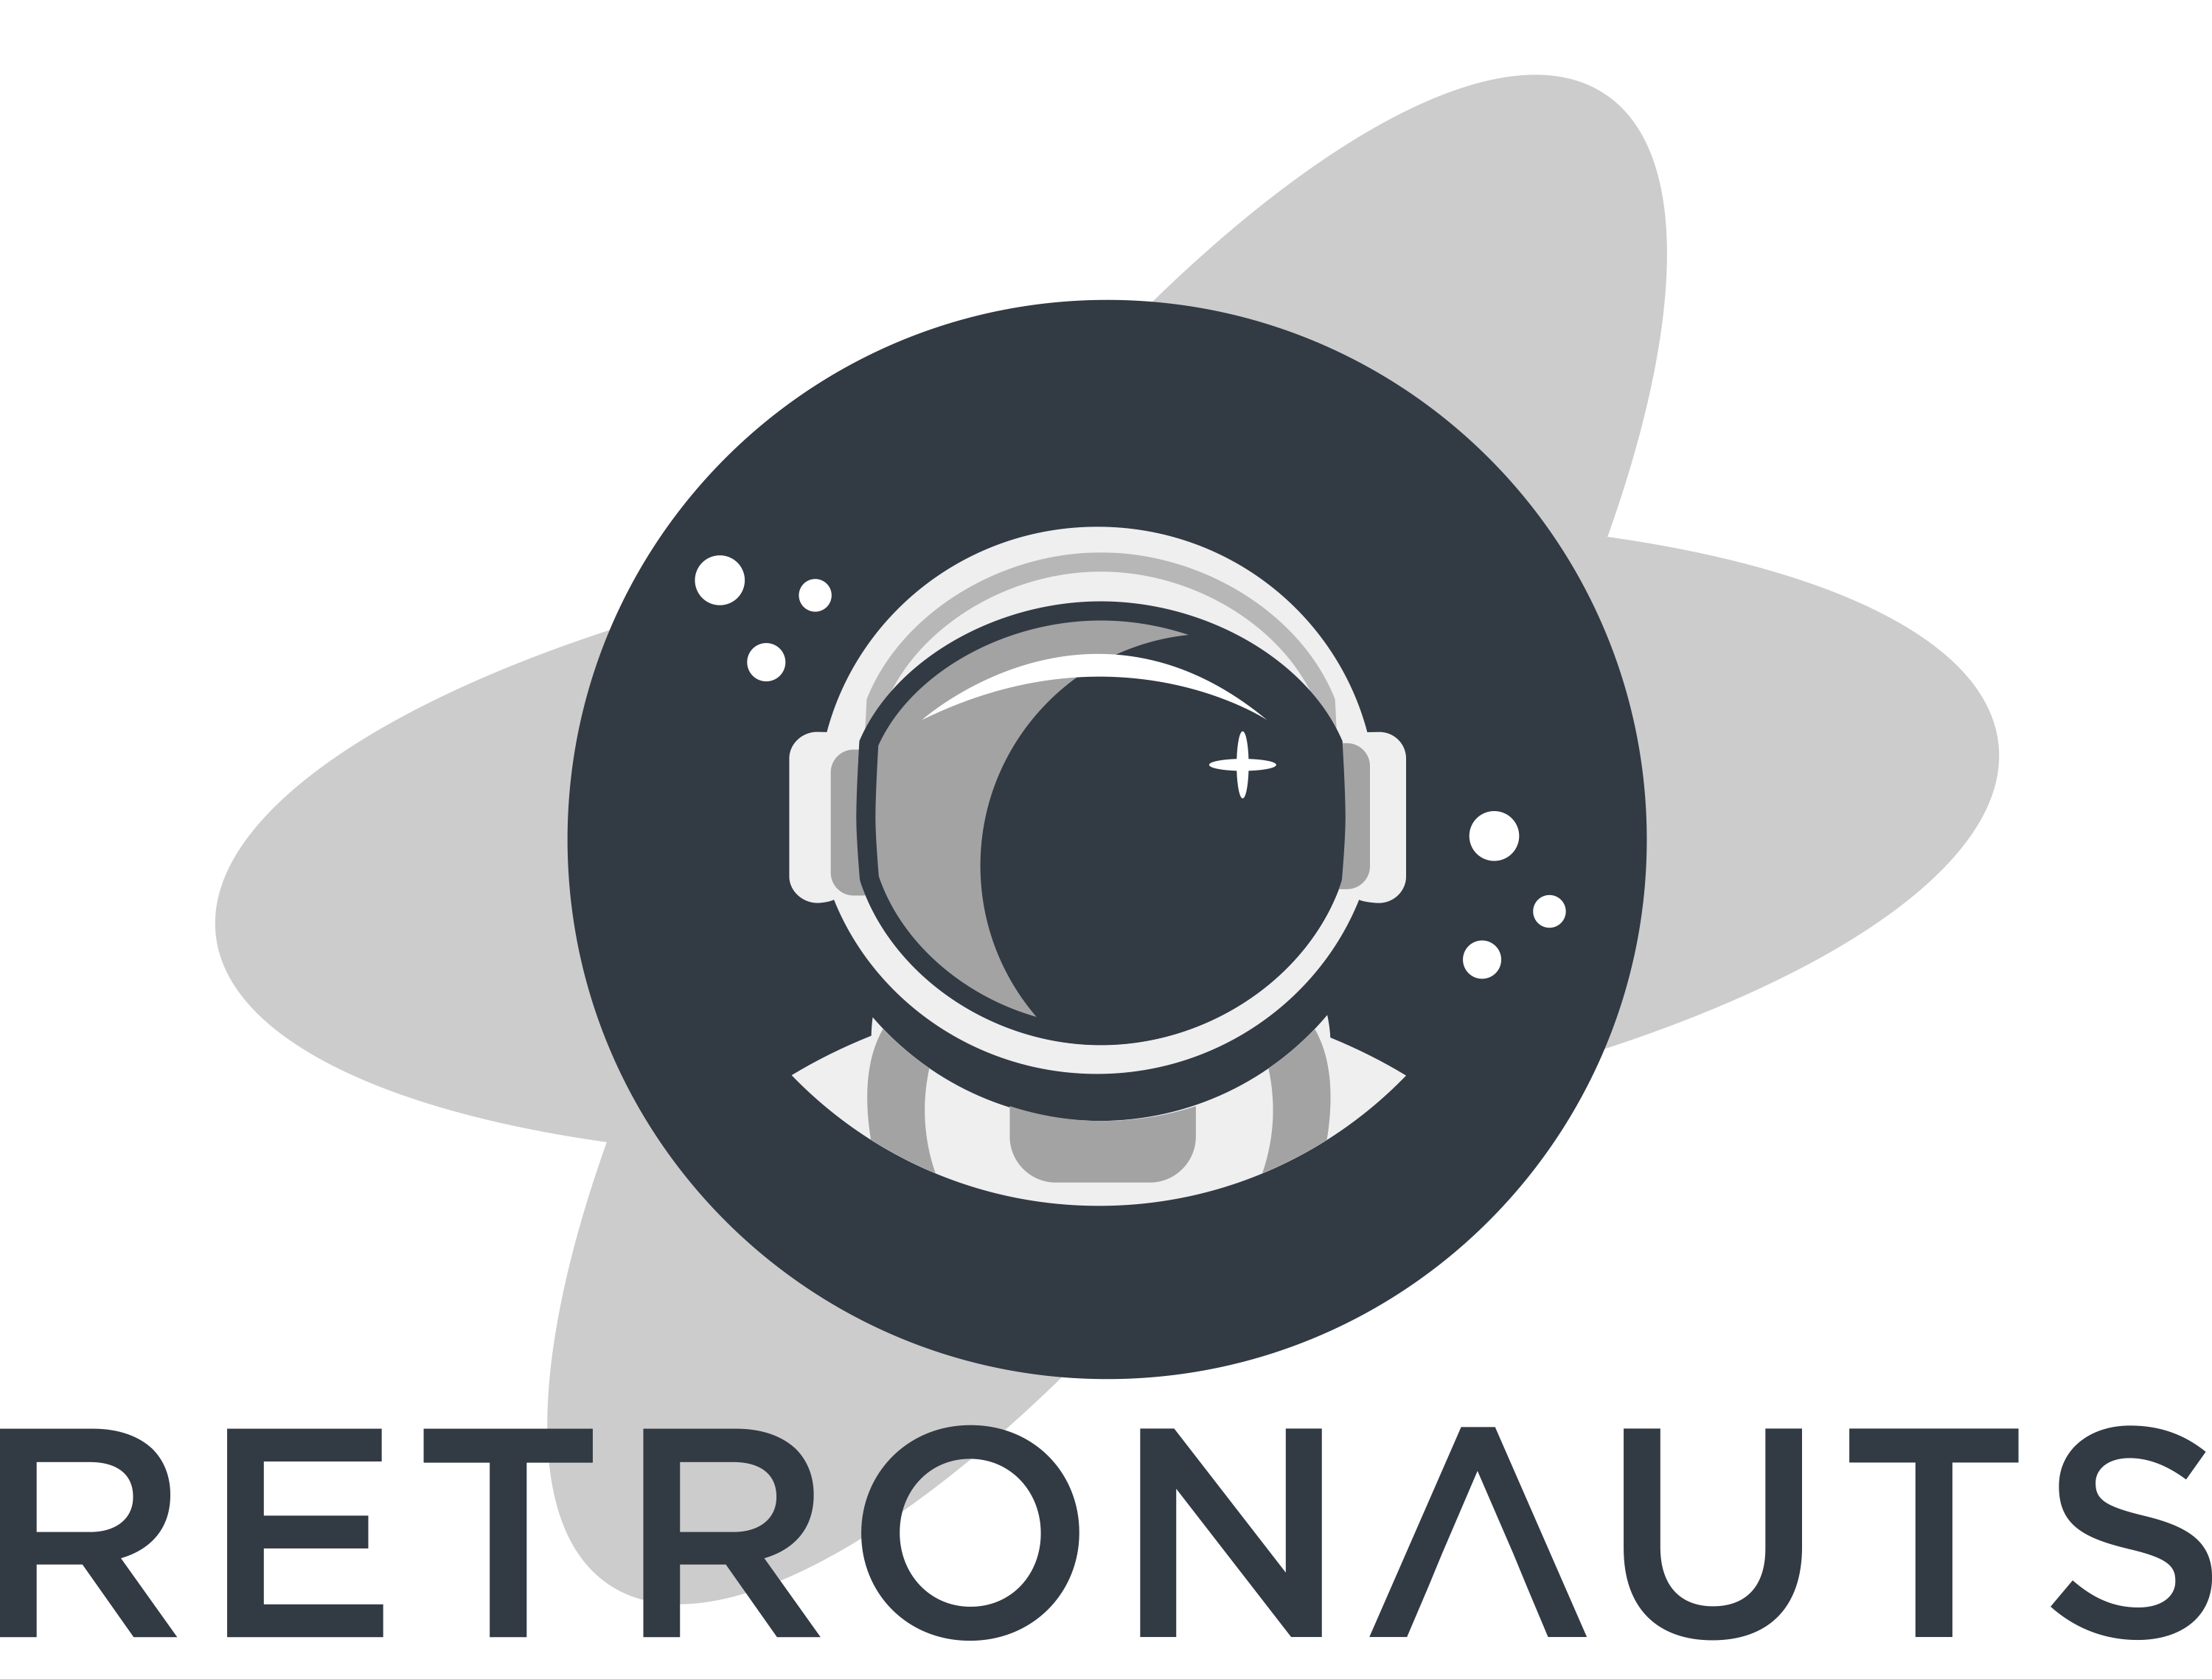 Retronauts Episode 241: The Return of Listener Comments Catch-Up